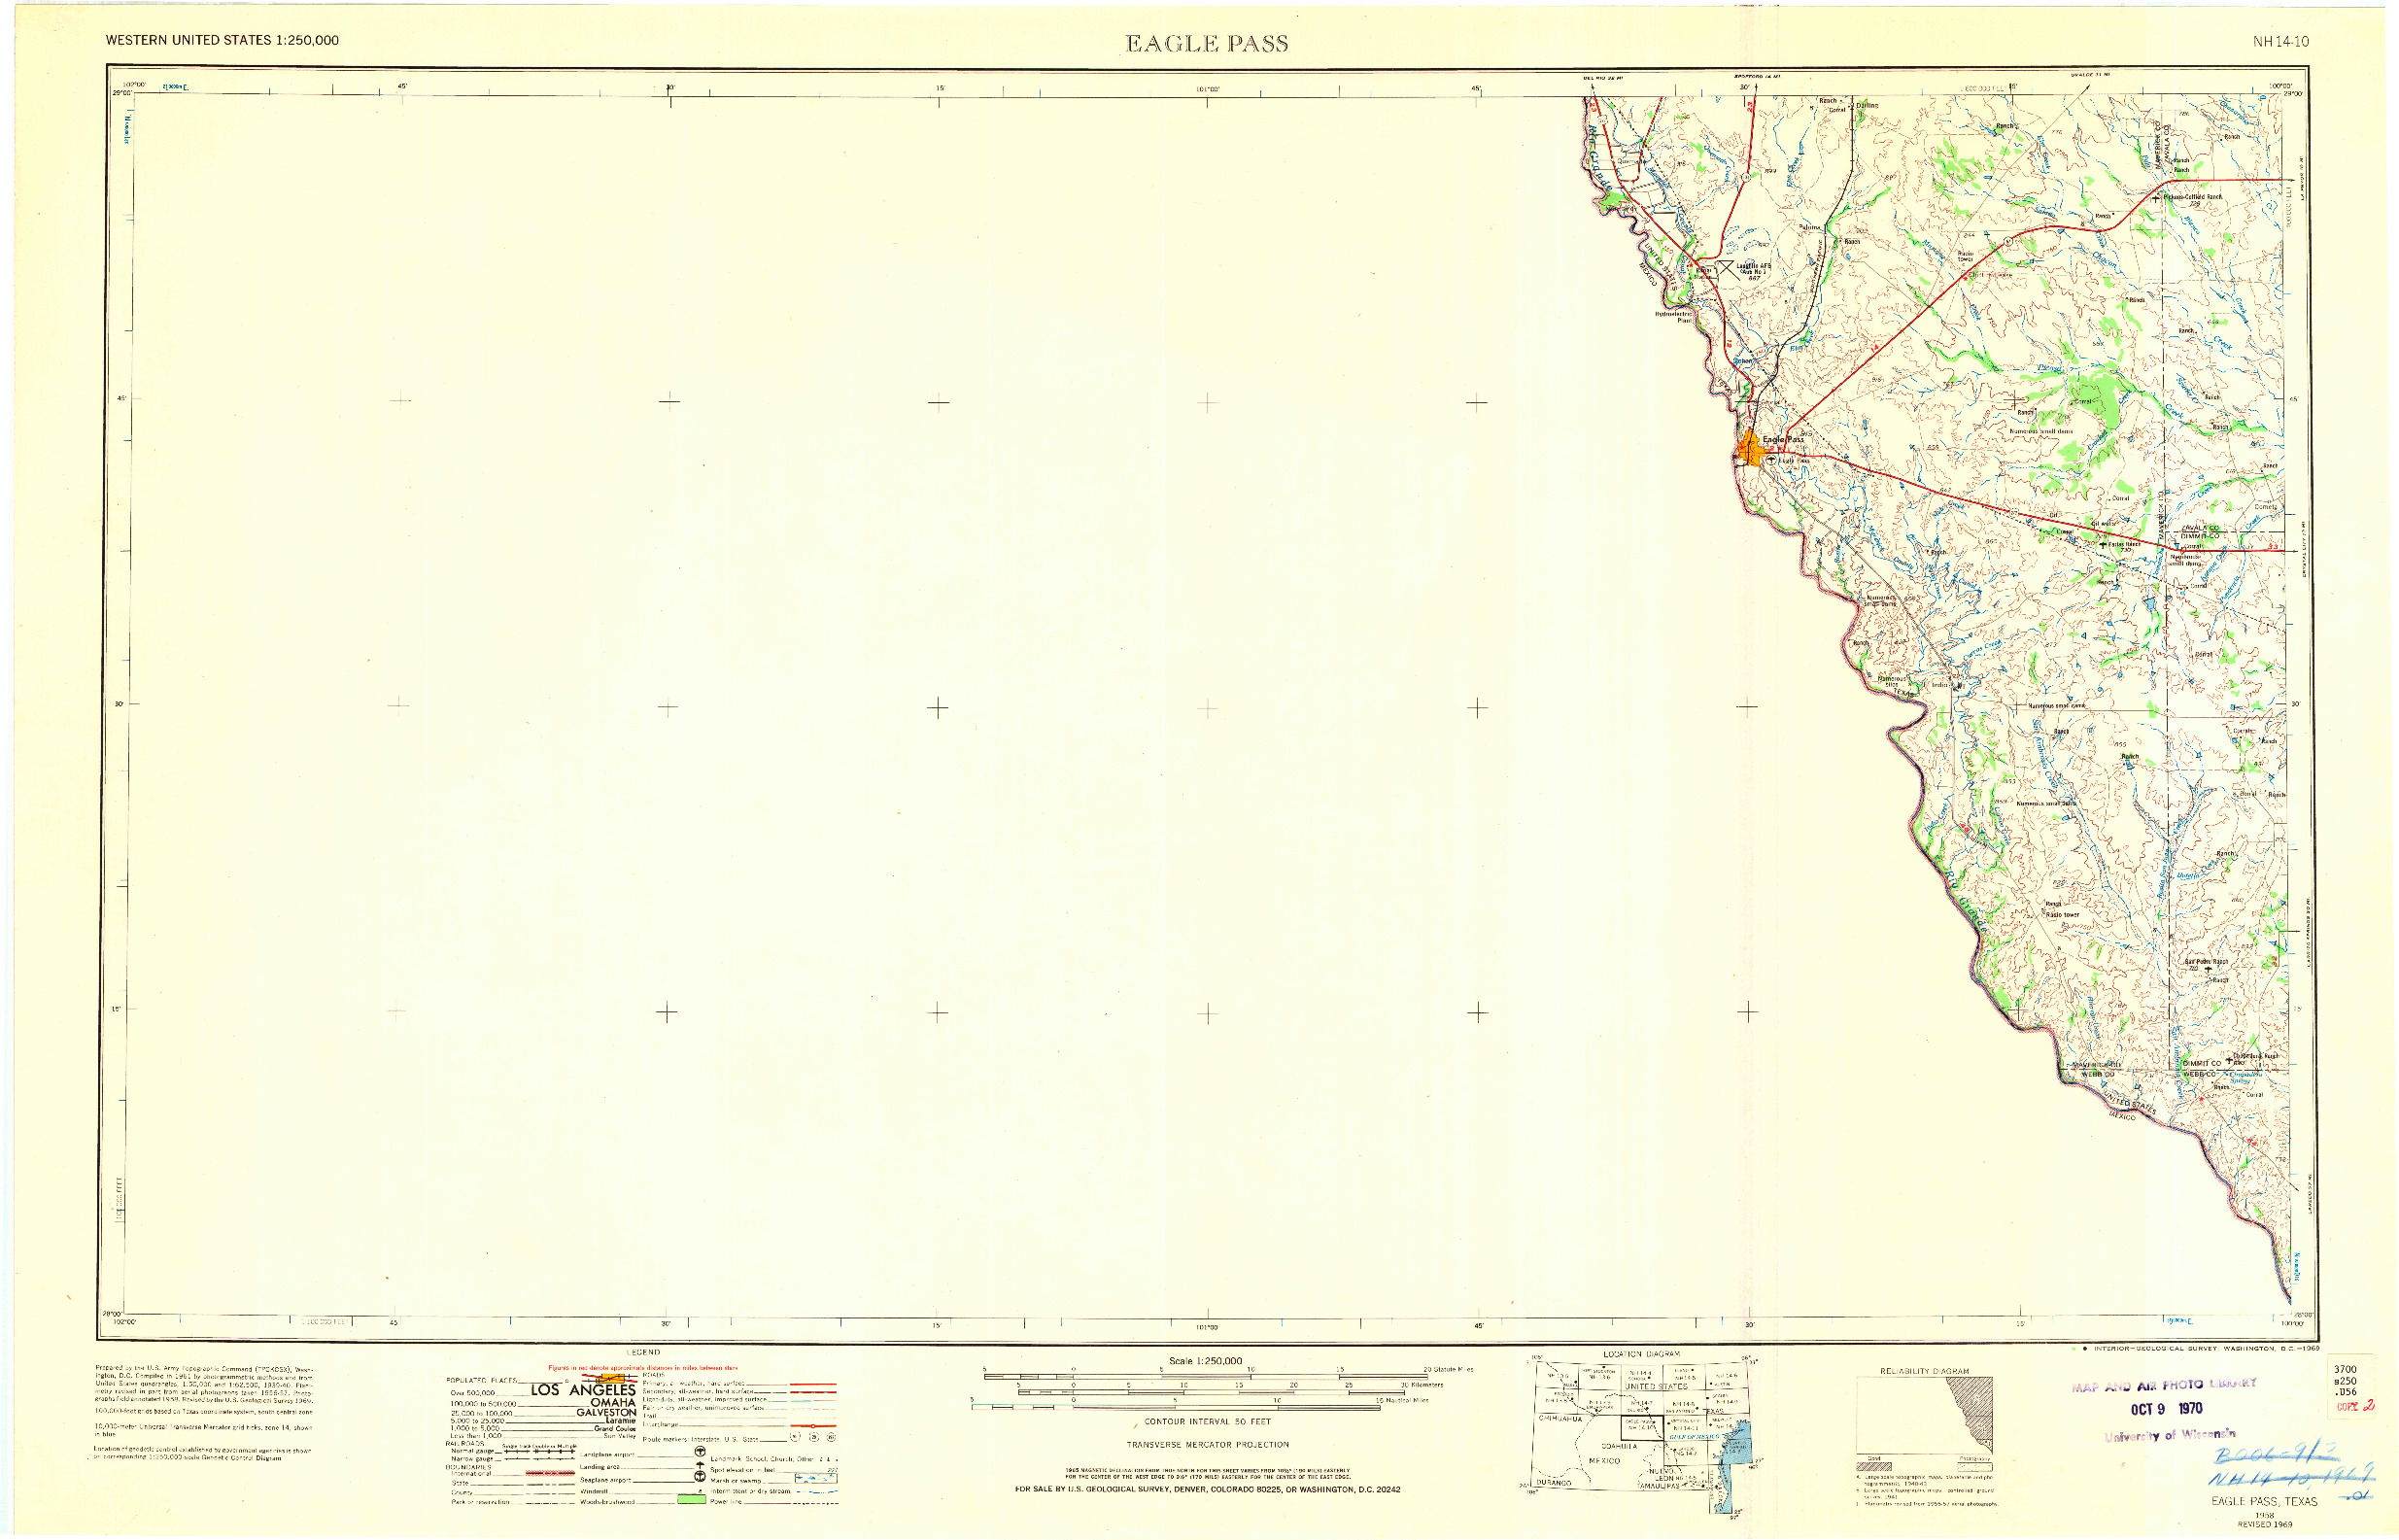 USGS 1:250000-SCALE QUADRANGLE FOR EAGLE PASS, TX 1958